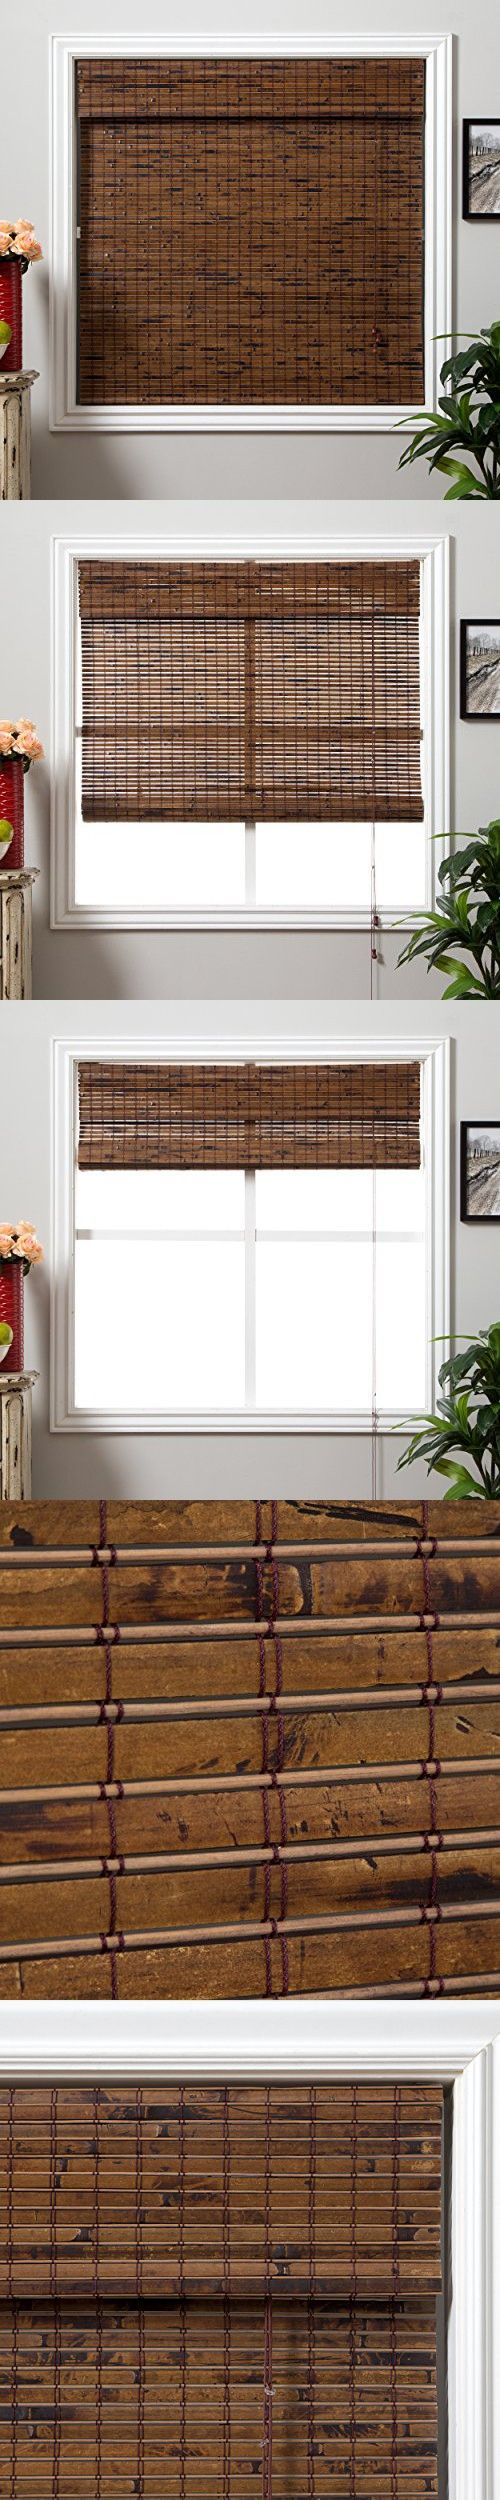 Arlo blinds java vintage light filtering bamboo roman shades blinds